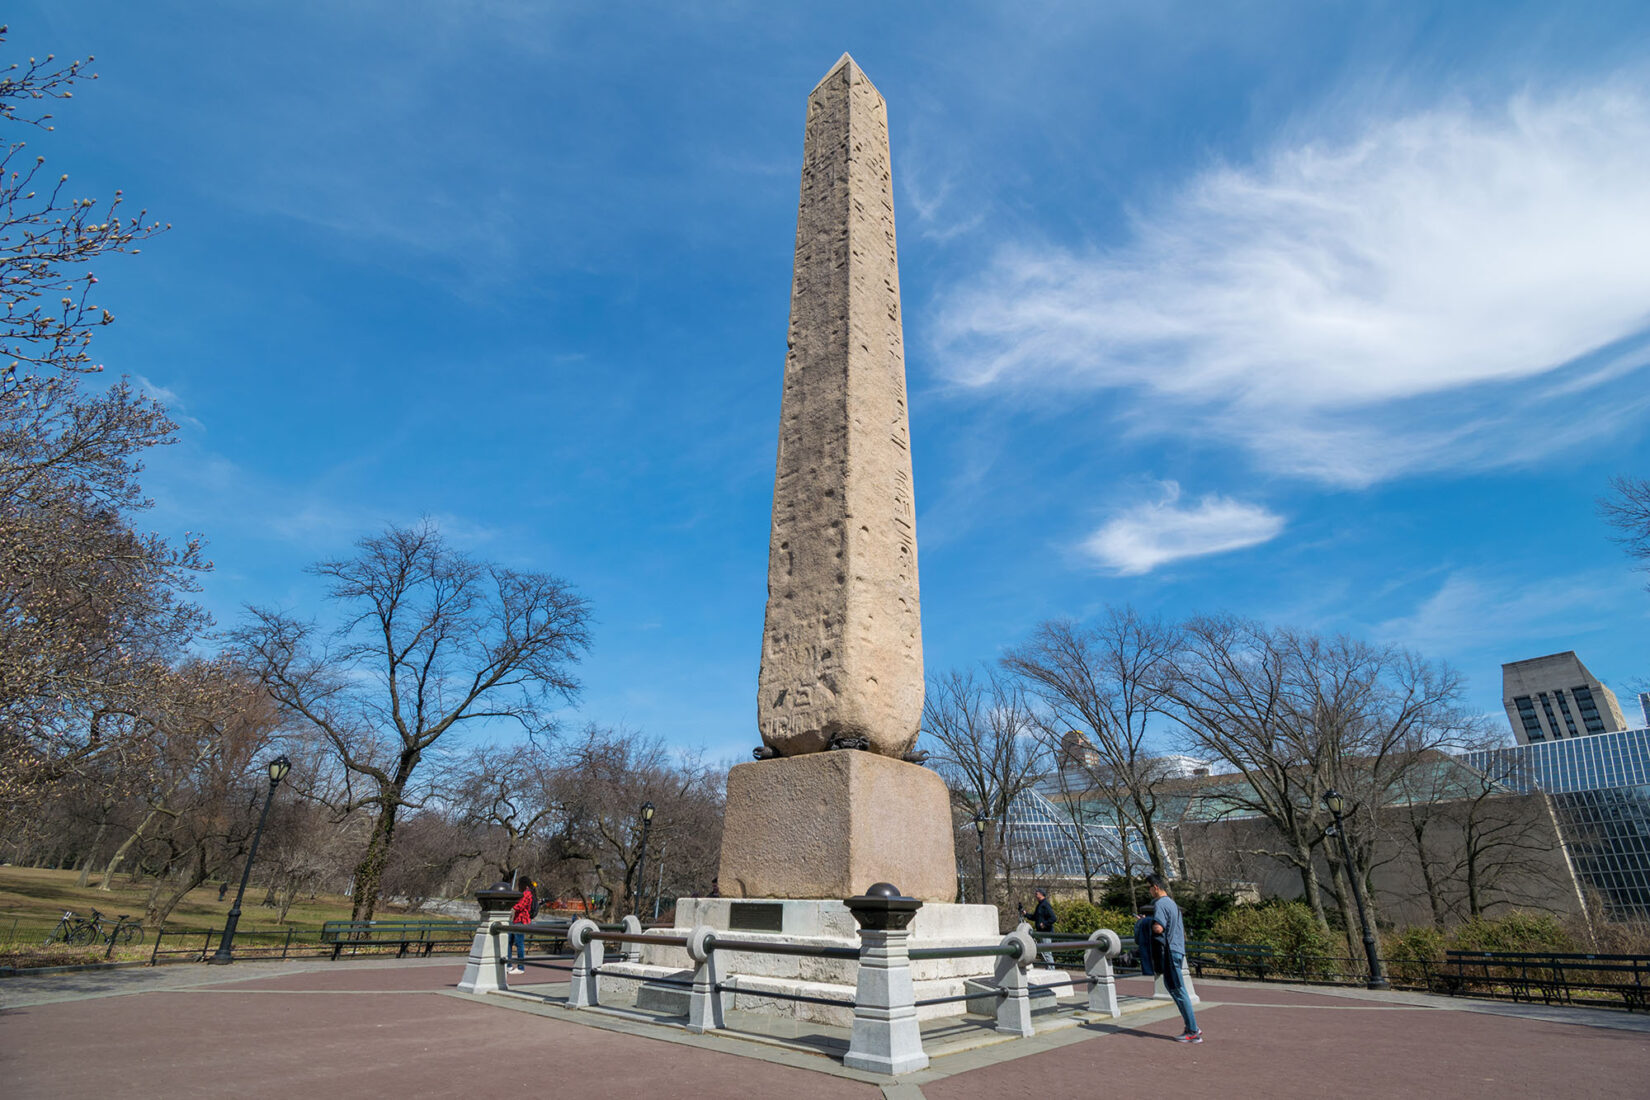 The Obelisk, also known as Cleopatra's Needle, seen under a clear sky in spring